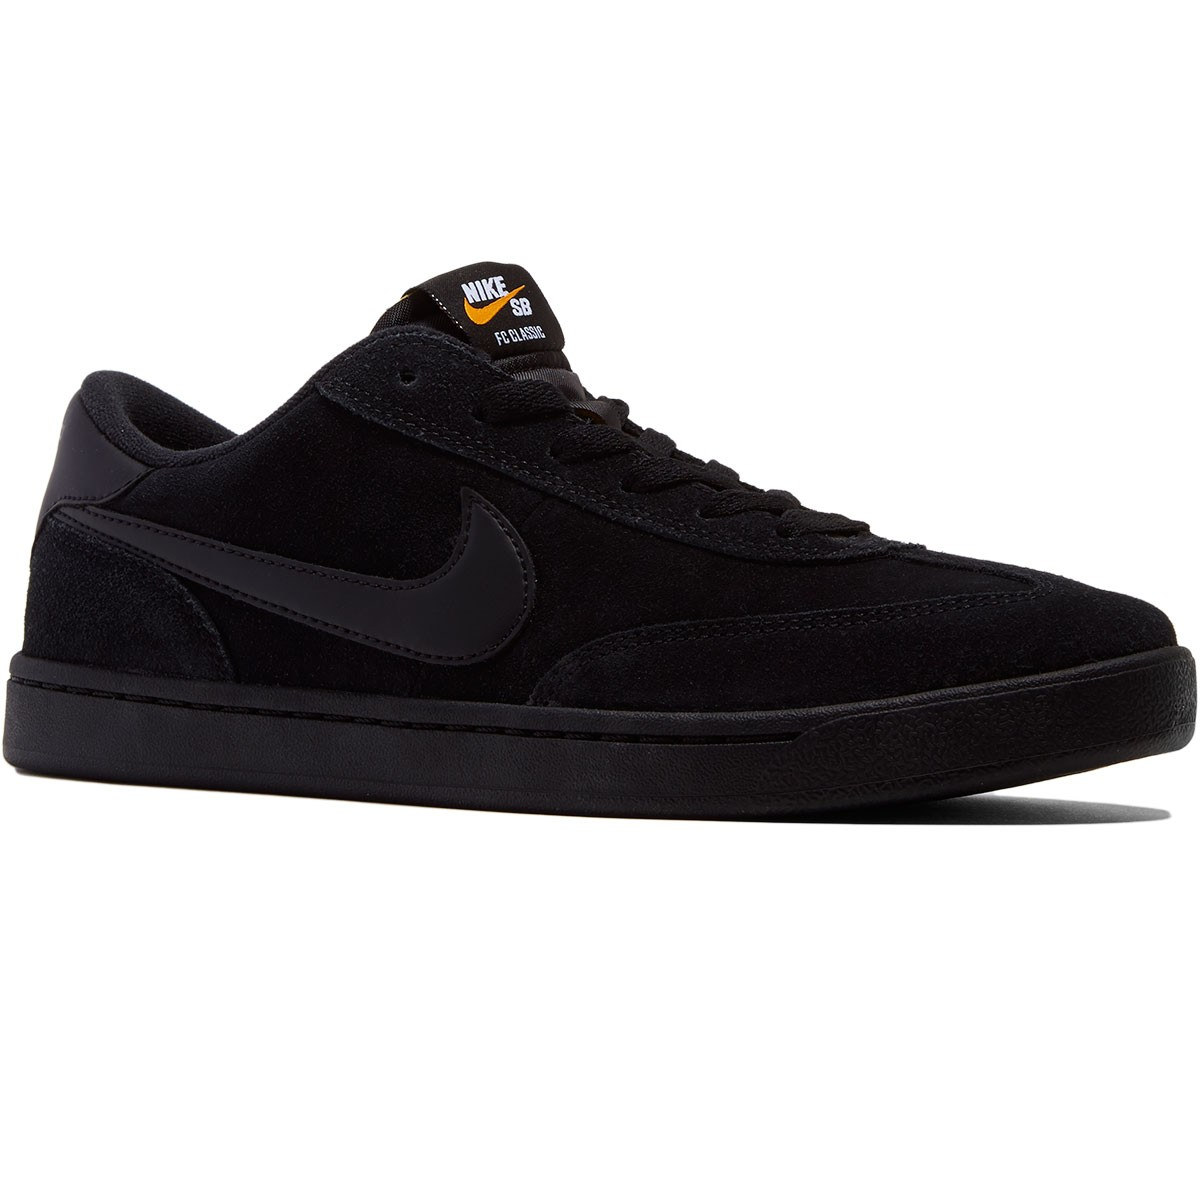 7d038e92d4d0ef Nike SB FC Classic Shoes - Black White Vivid Orange - 8.0